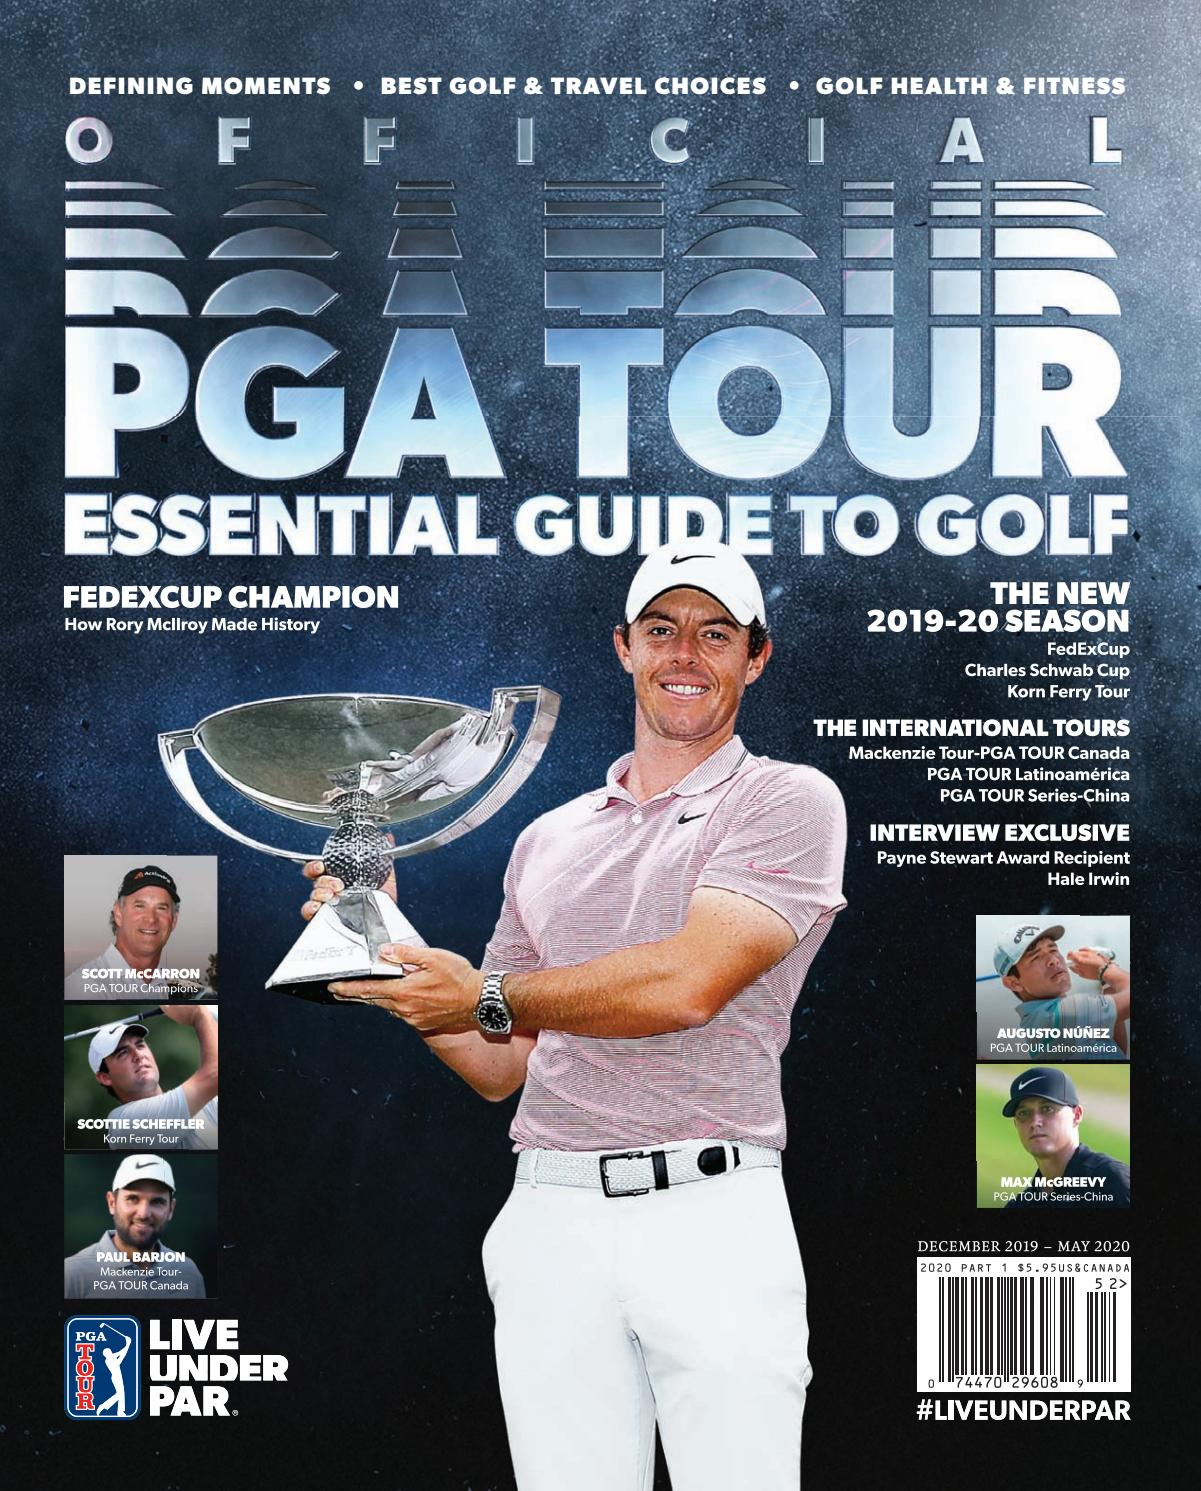 Official PGA TOUR Essential Guide to Golf: December 2019 - May 2020 by  Magazine - issuu